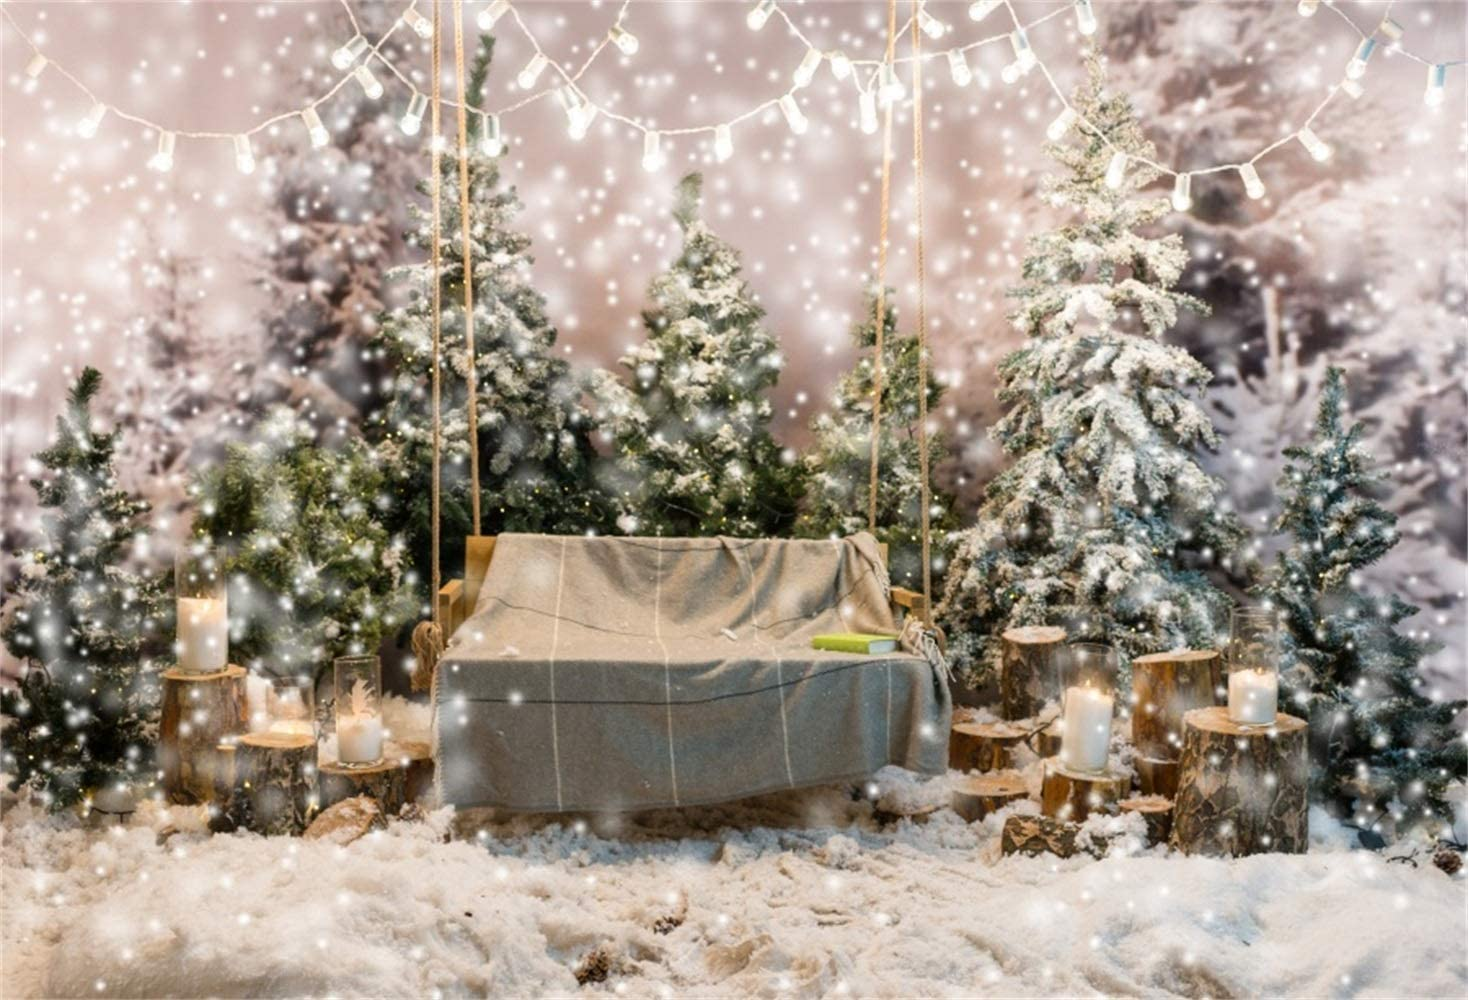 Dreamlike Christmas Theme Backdrop Vinyl 10x7ft Snowy Pine Forest Frosty Trees Swing Cloth Book Candles Light Decorations Background Xmas Party Banner Child Kids Baby Portrait Shoot